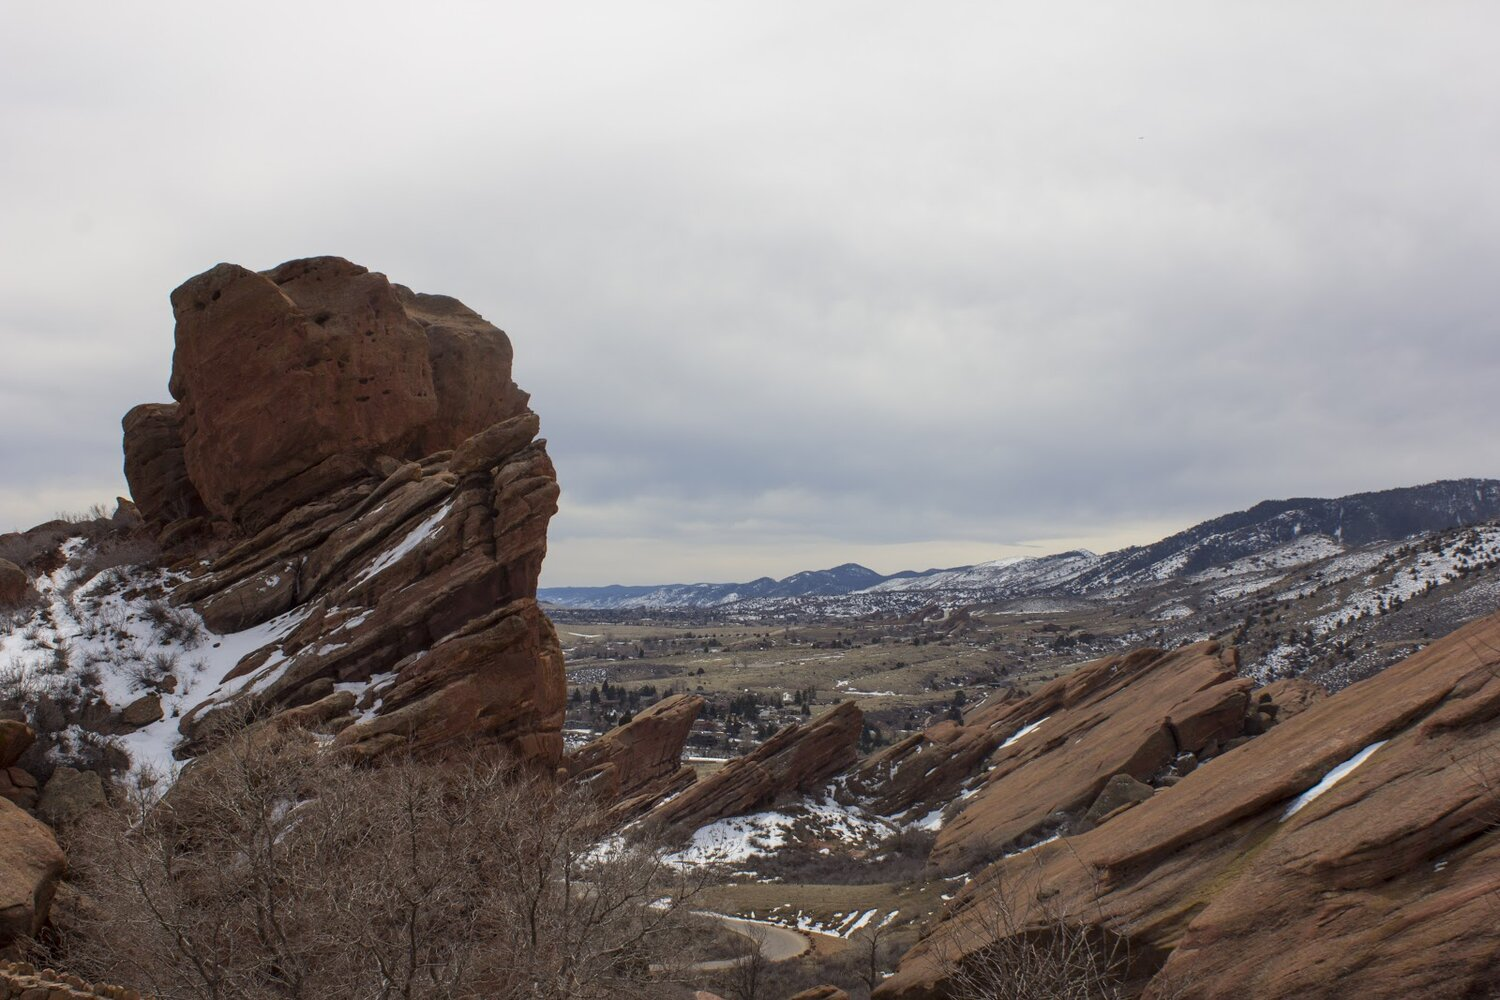 The gorgeous mountain views alone make Red Rocks National Park worth it. You can easily get lost in beauty and wonder when in Red Rocks. Be careful when walking the trails and taking pictures though, climbing on the rocks is not allowed off trail or you might get kicked out!